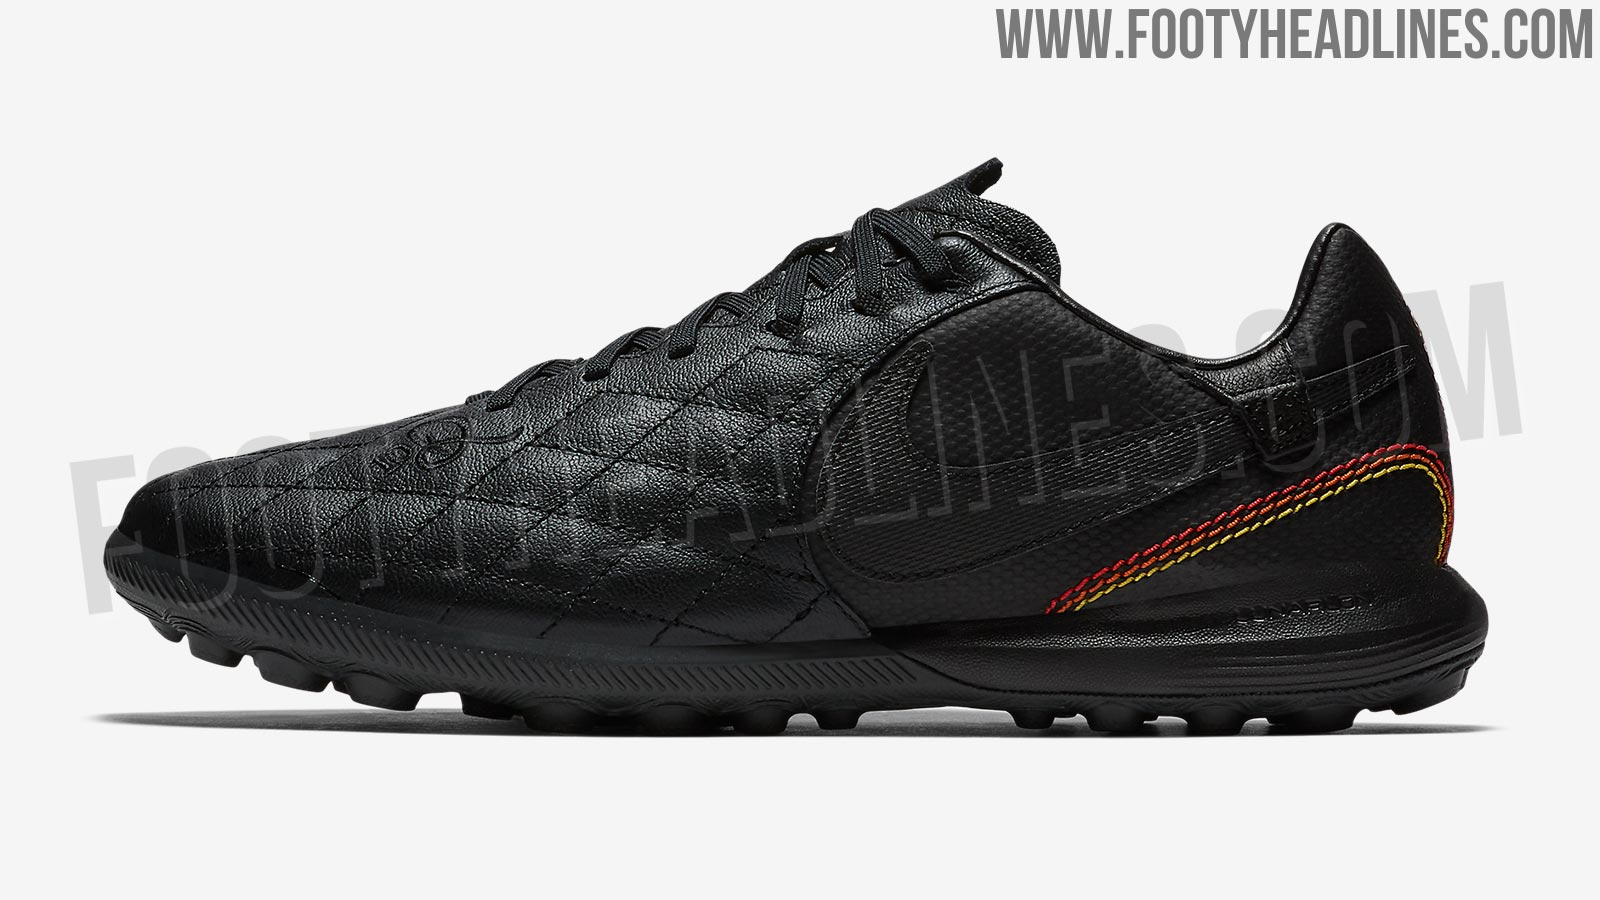 Black And Yellow Turf Shoes